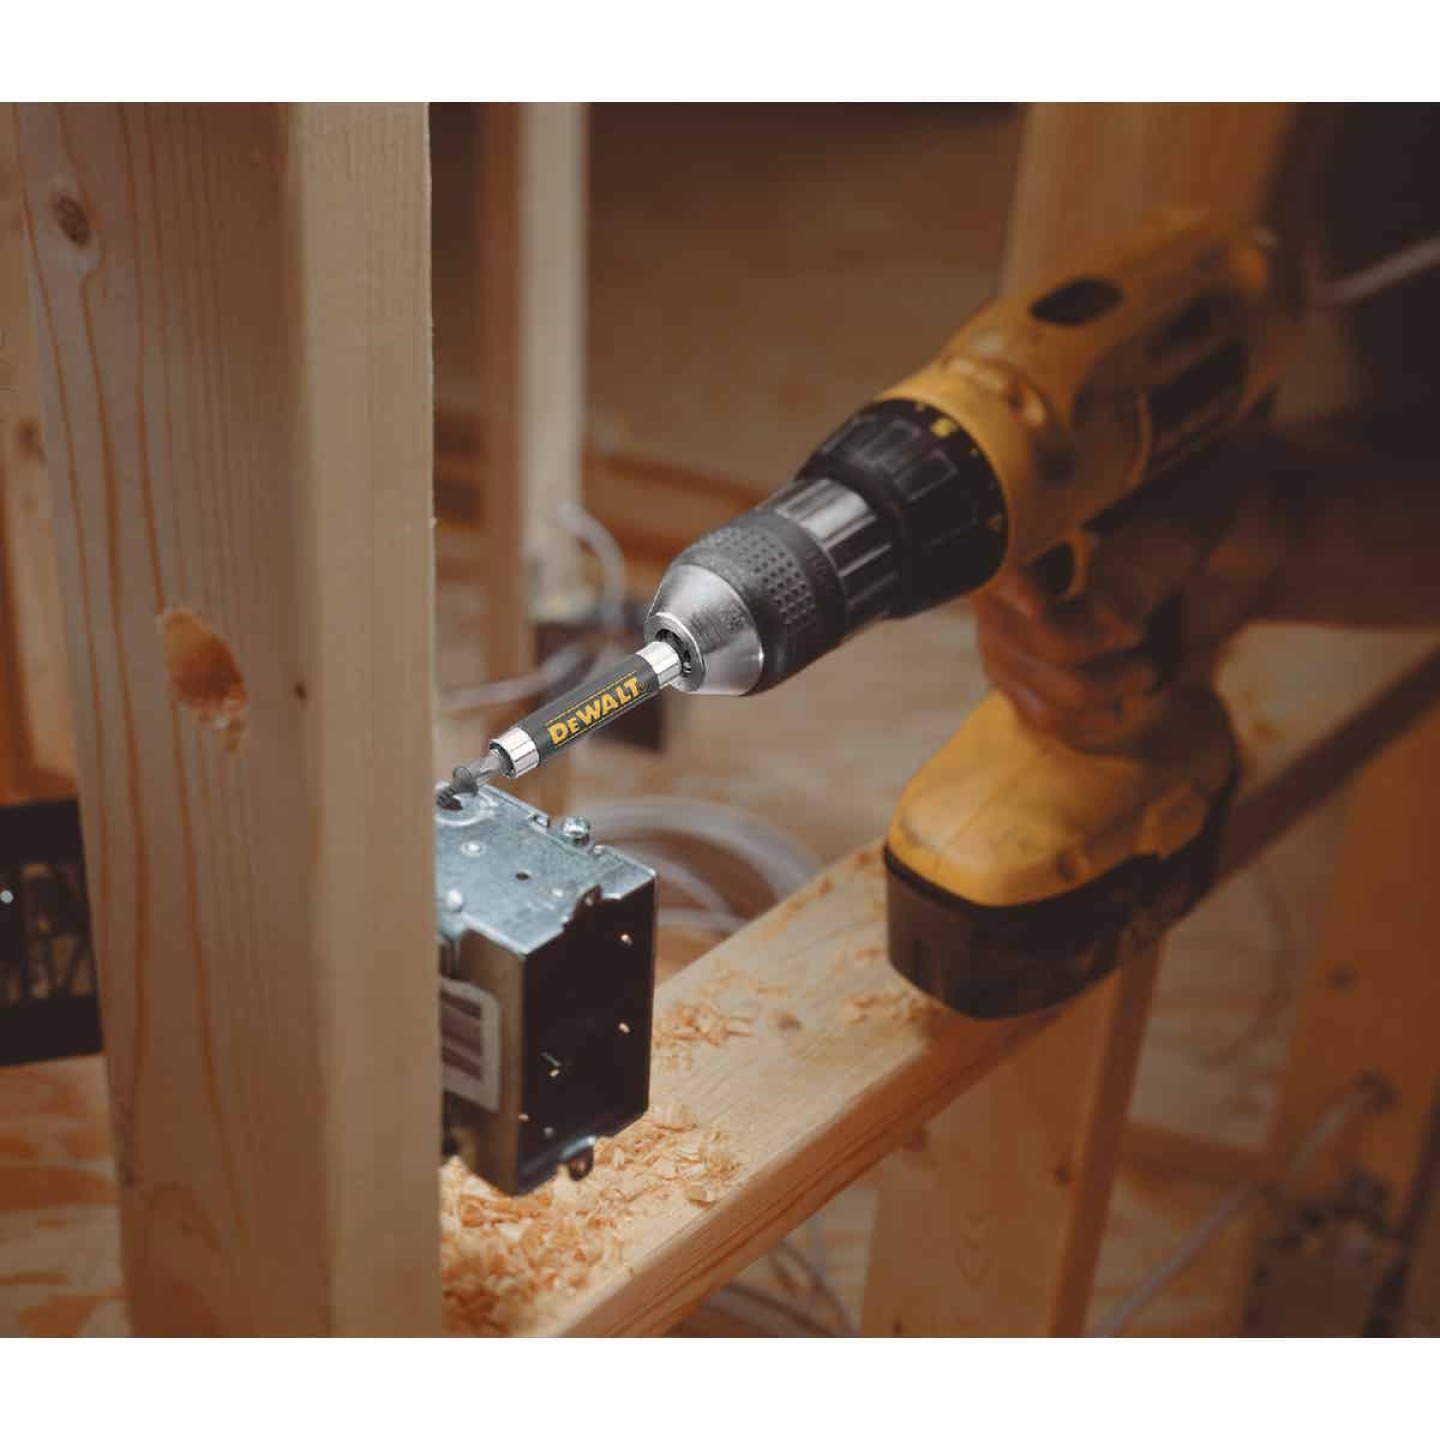 DeWalt 1/4 In. Hex x 3 In. Magnetic Bit Holder Image 2